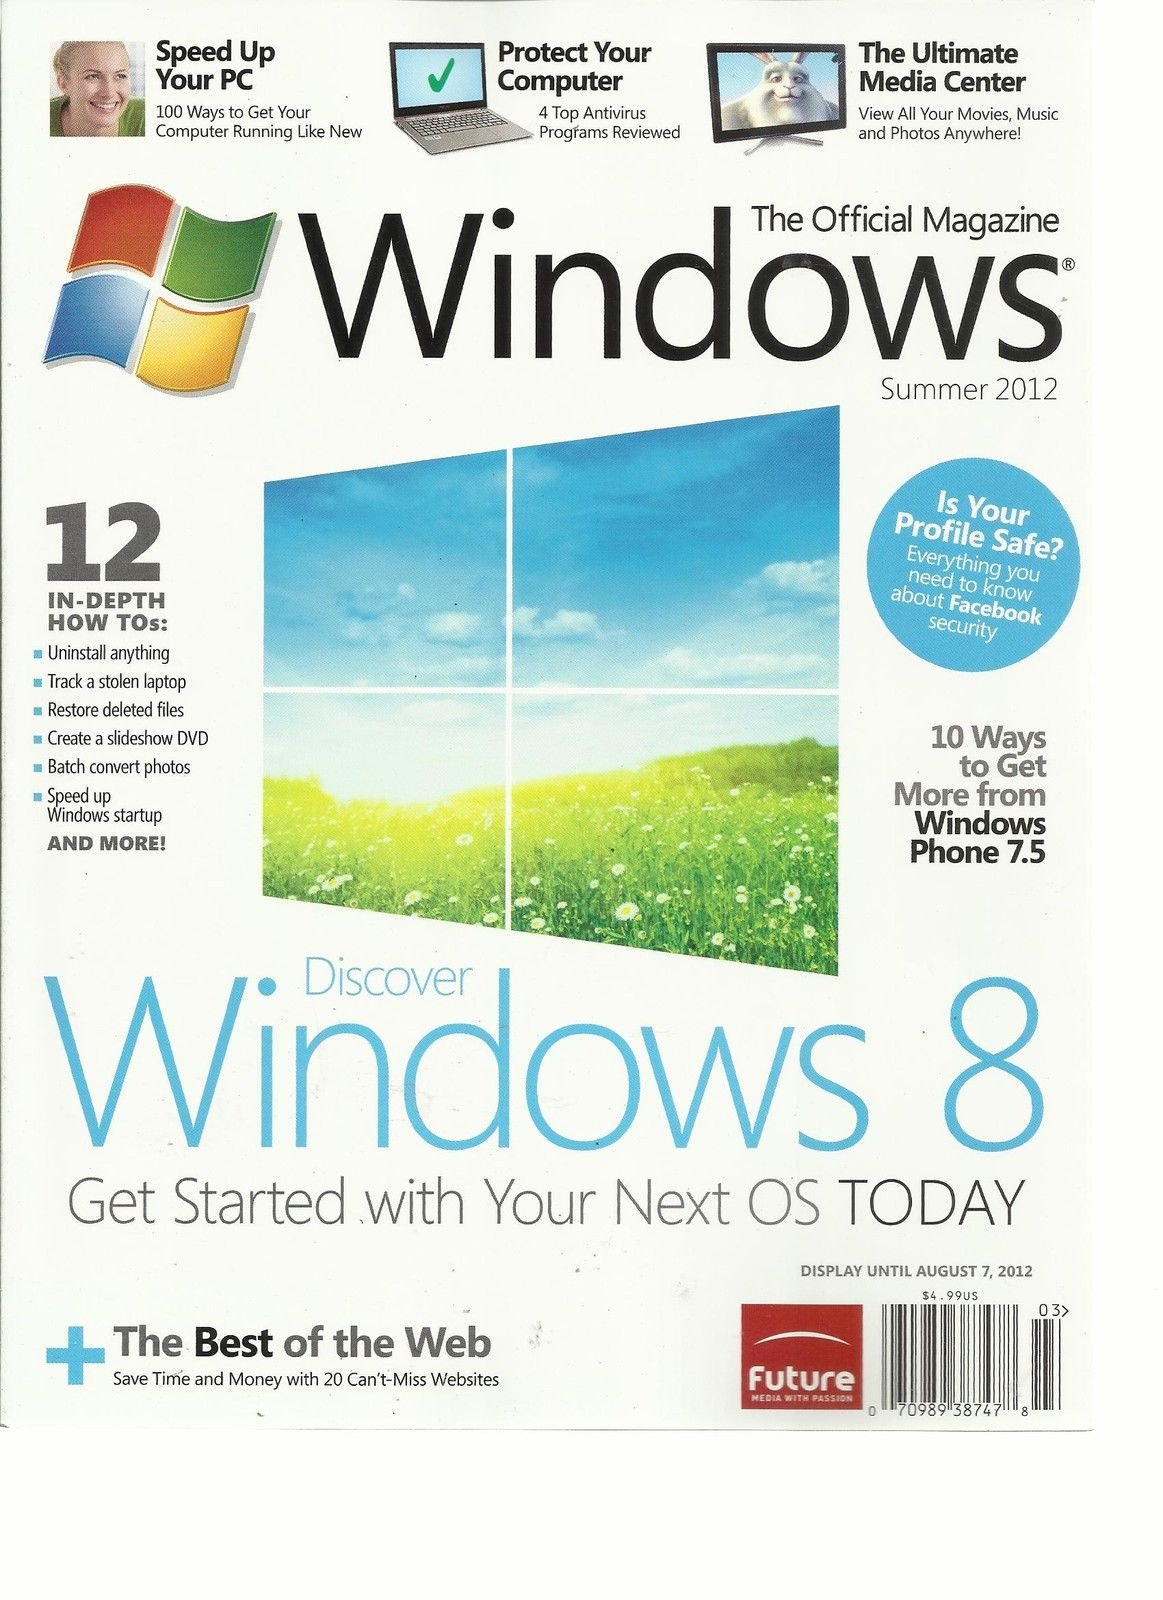 WINDOWS,SUMMER, 2012 THE OFFICIAL MAGAZINE (DISCOVER WINDOWS 8 GET STARTED WITH